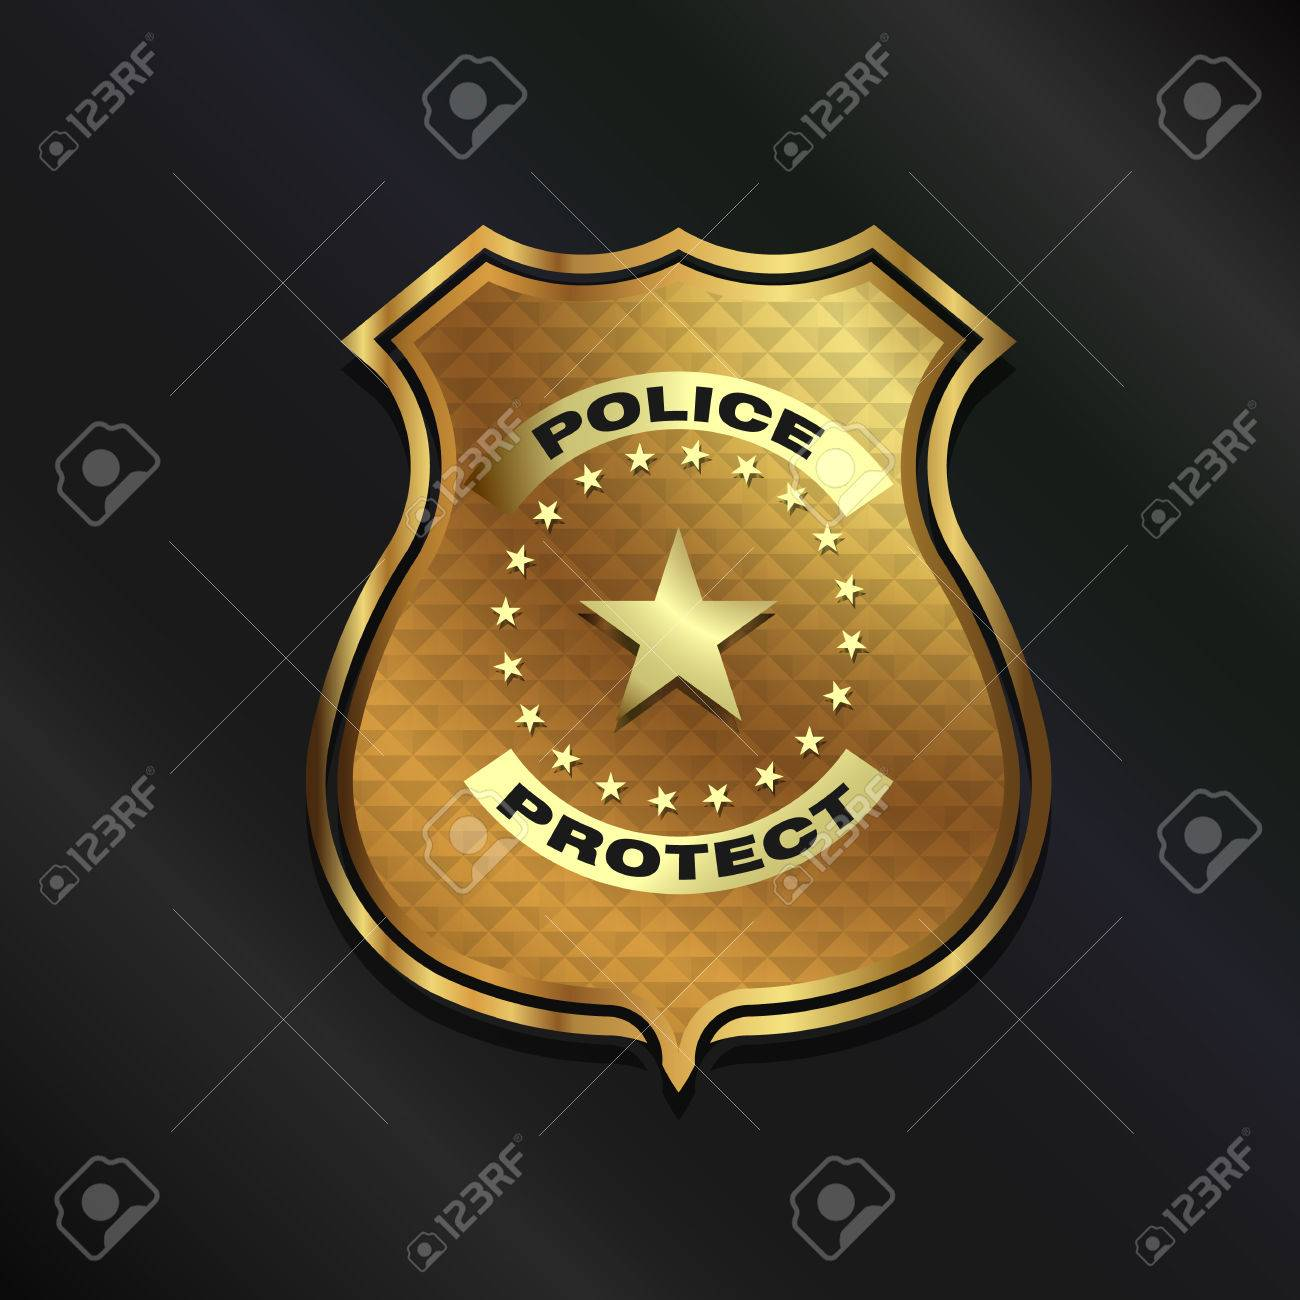 police badge stock photos u0026 pictures royalty free police badge